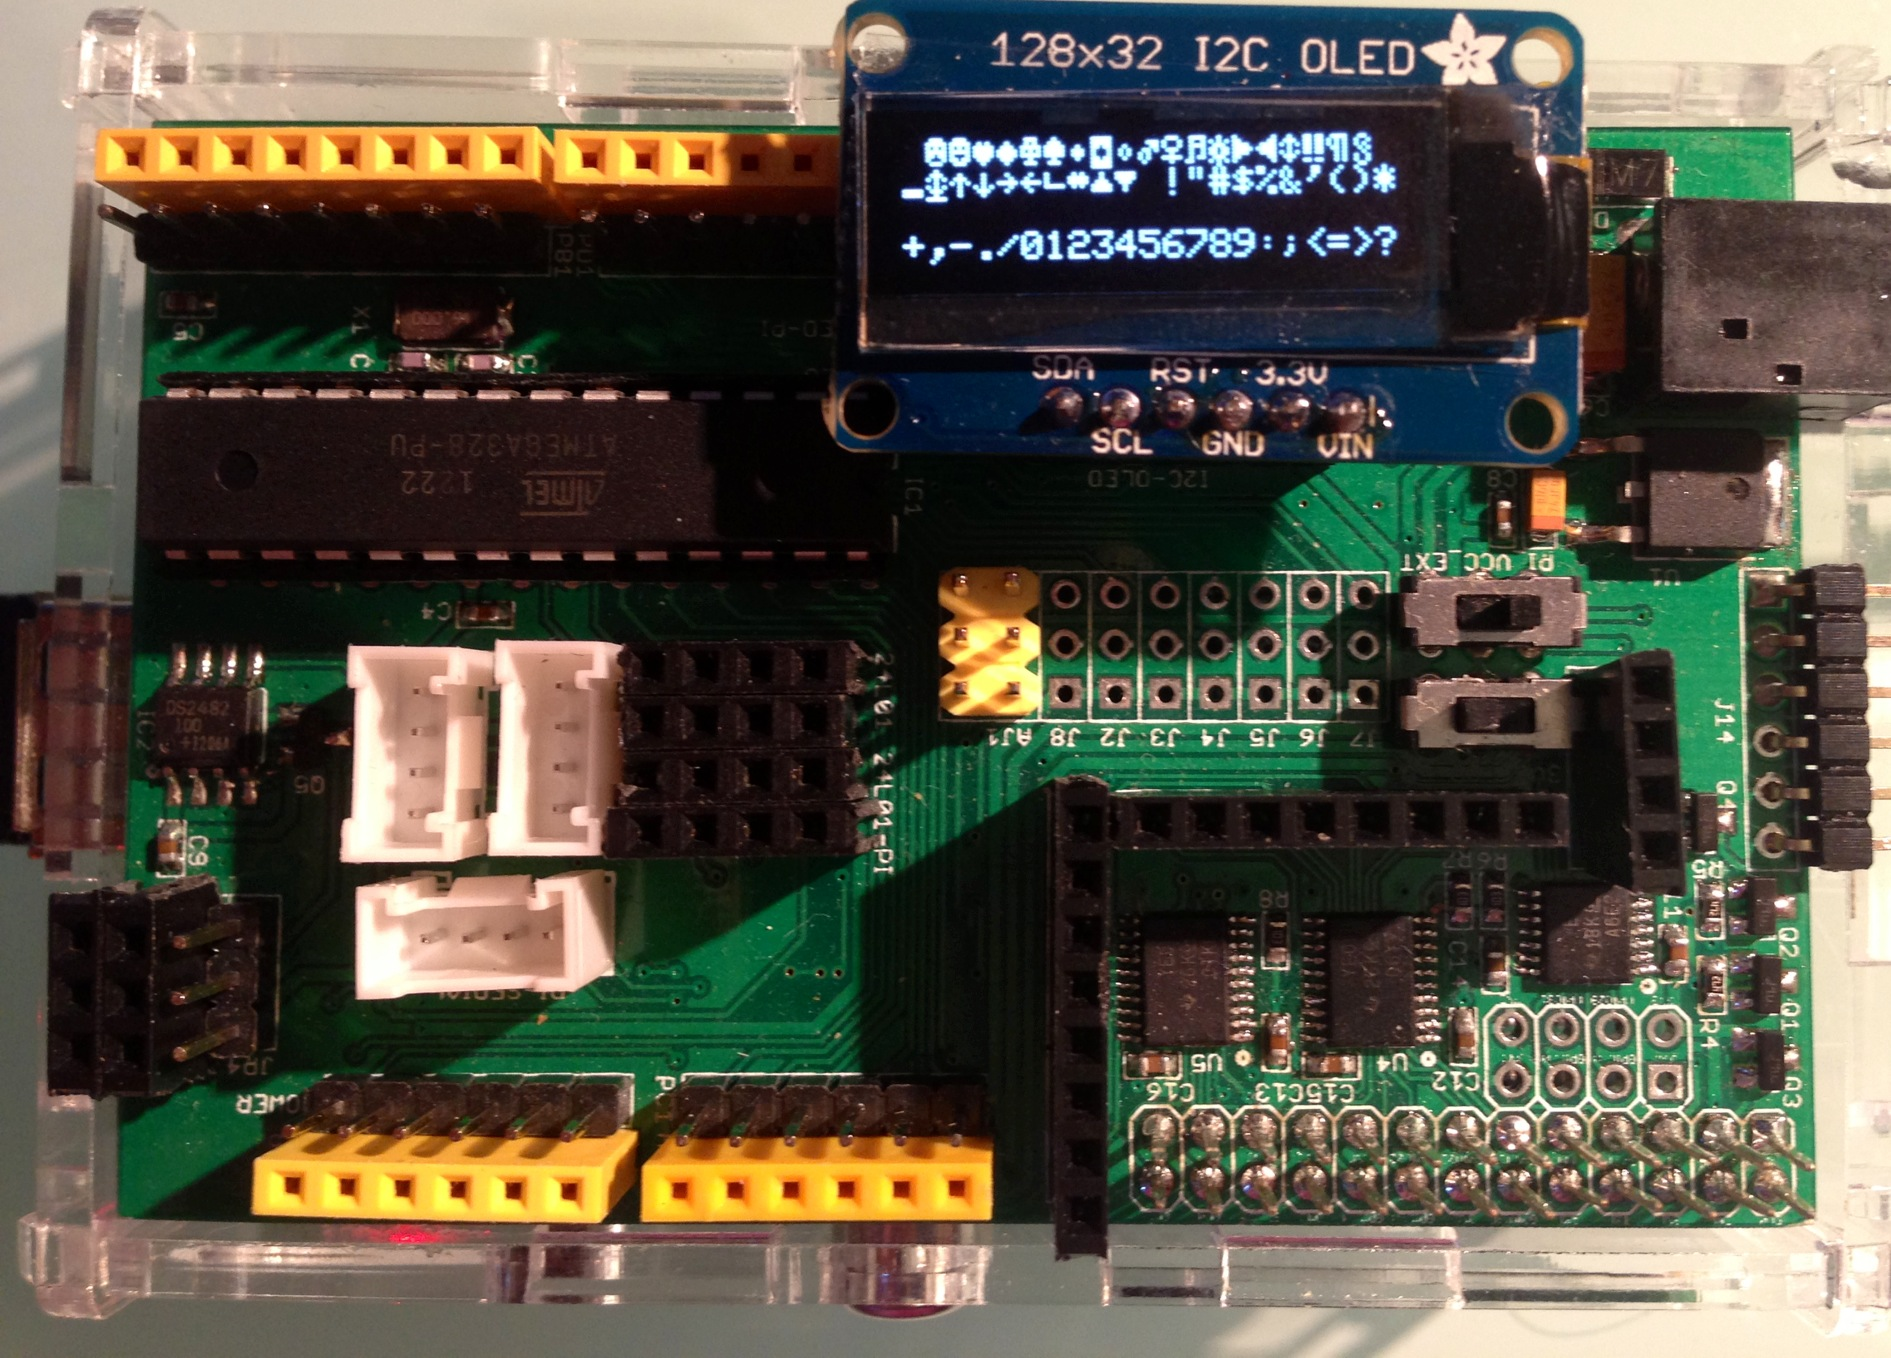 Adafruit Ssd1306 Oled Display Driver For Raspberry Pi Charless Blog Wiringpi Shell Script I2c On Arduipi